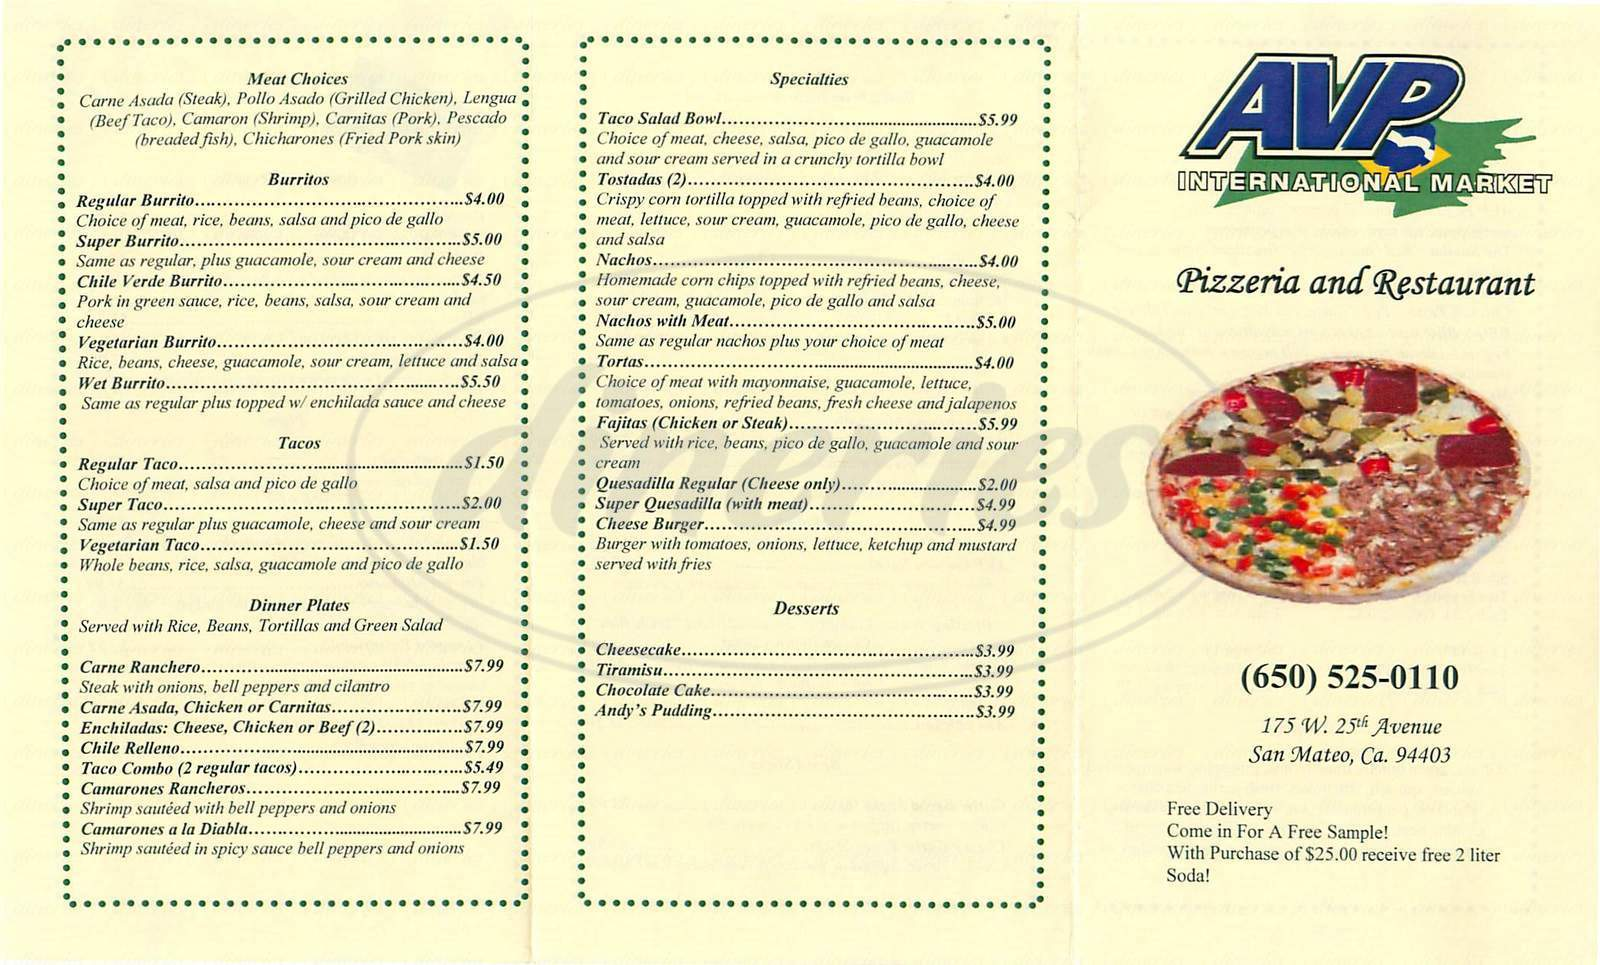 menu for AVP International Market